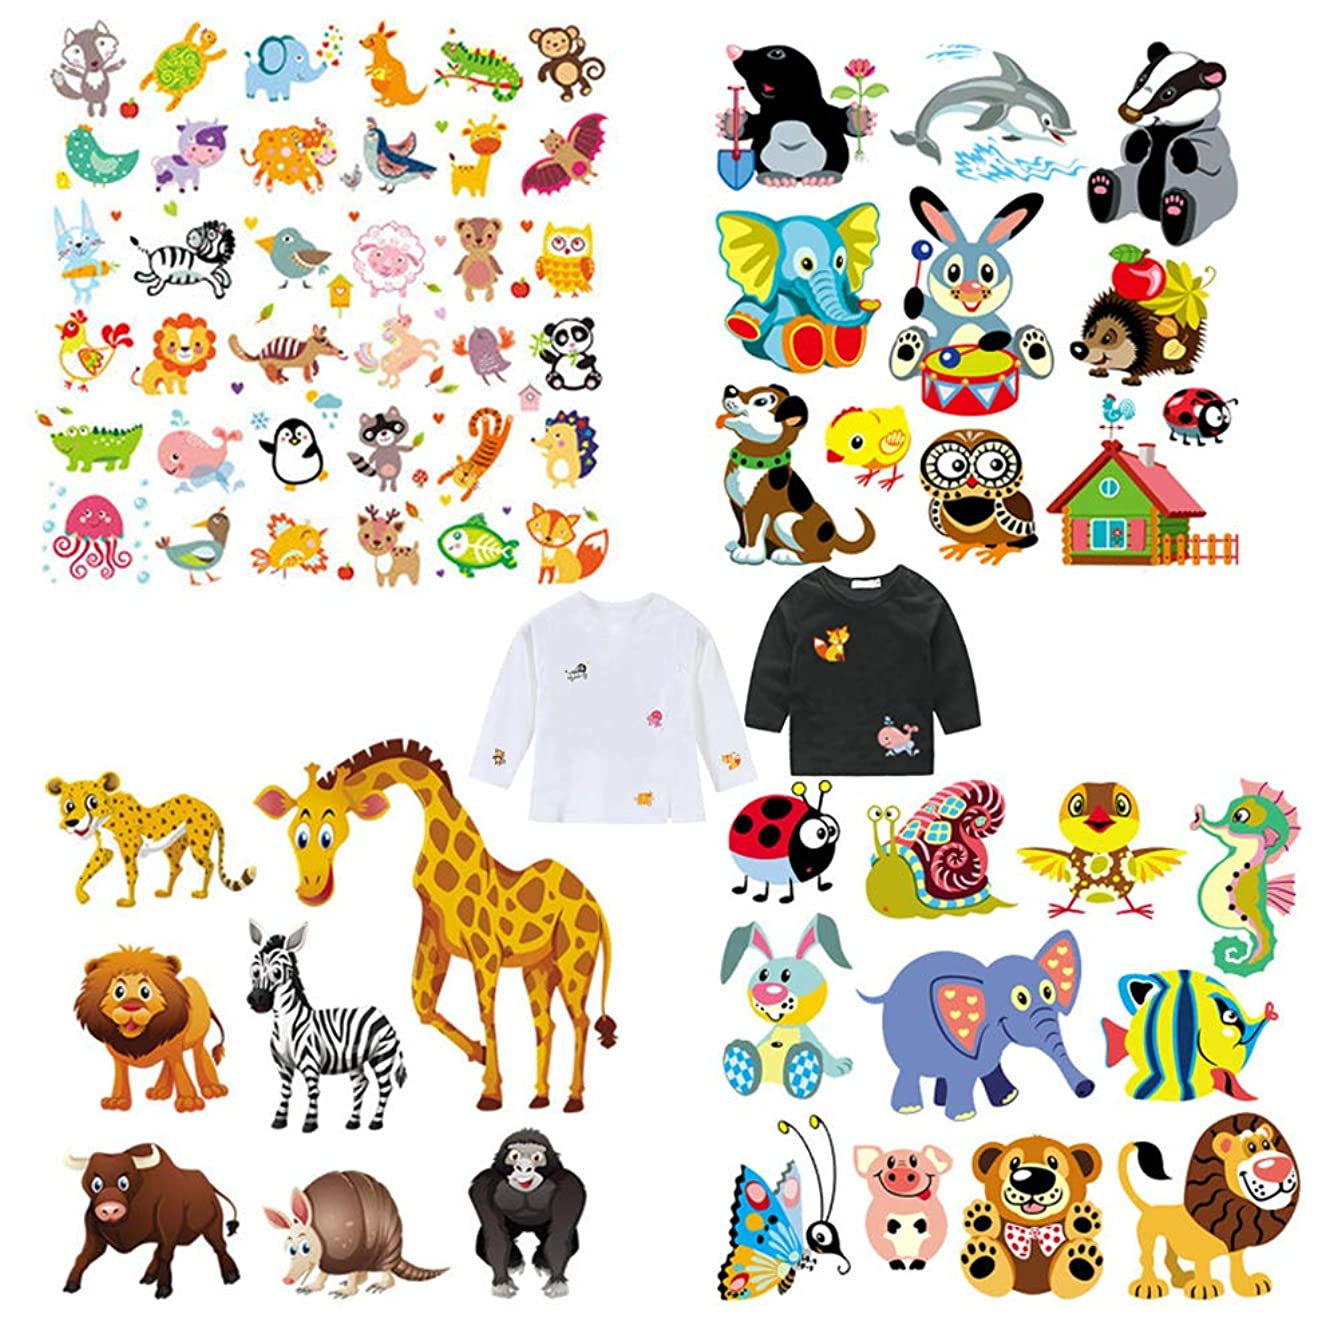 Kids Patches Lovely Animal Iron on Transfer Stickers with Many Different Cute Lion Cow Leopard Cartoon Things Appliques Stickers Boys Girls Children Clothes Decor Free DIY 4 PCS